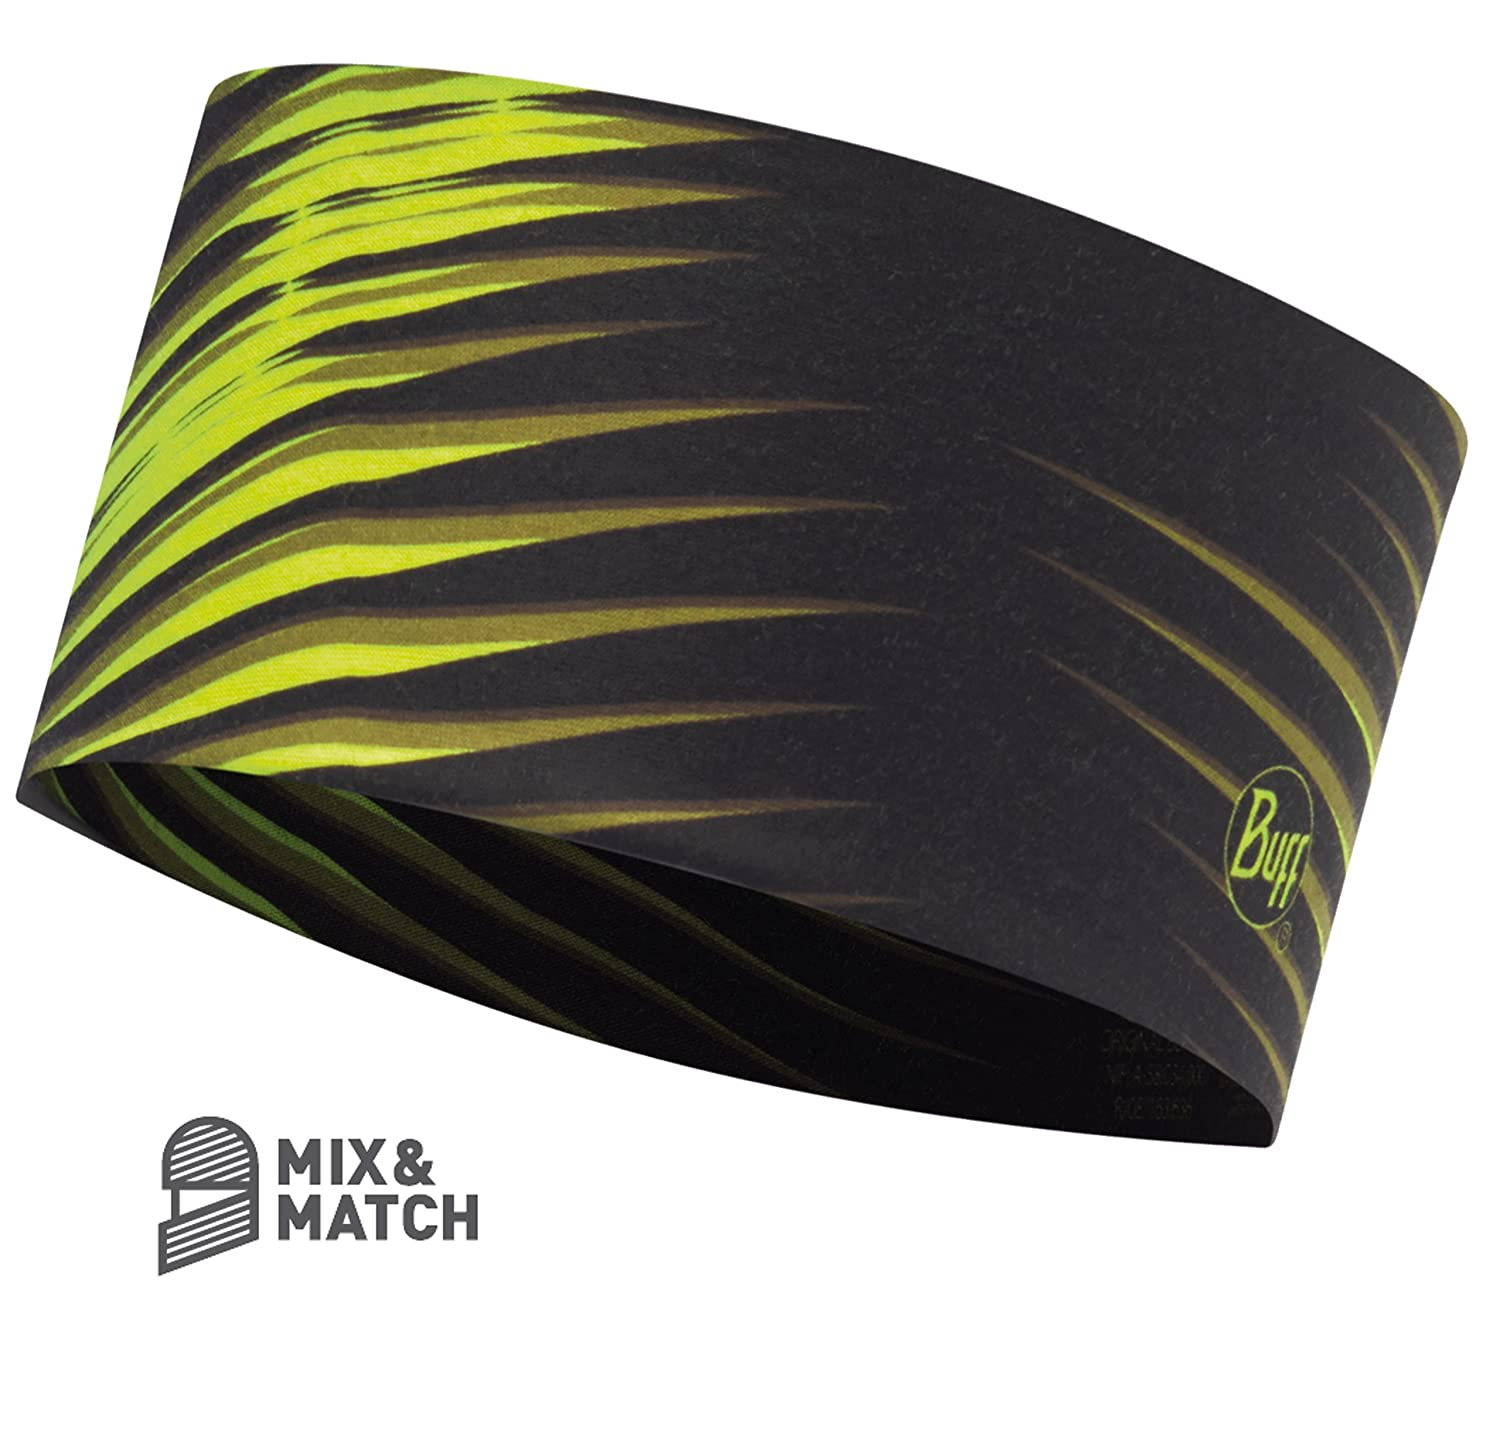 Buff Fascia Leggera Articolo 117079117 BUFF HEADBAND OPTICAL YELLOW 117079.117.10.00